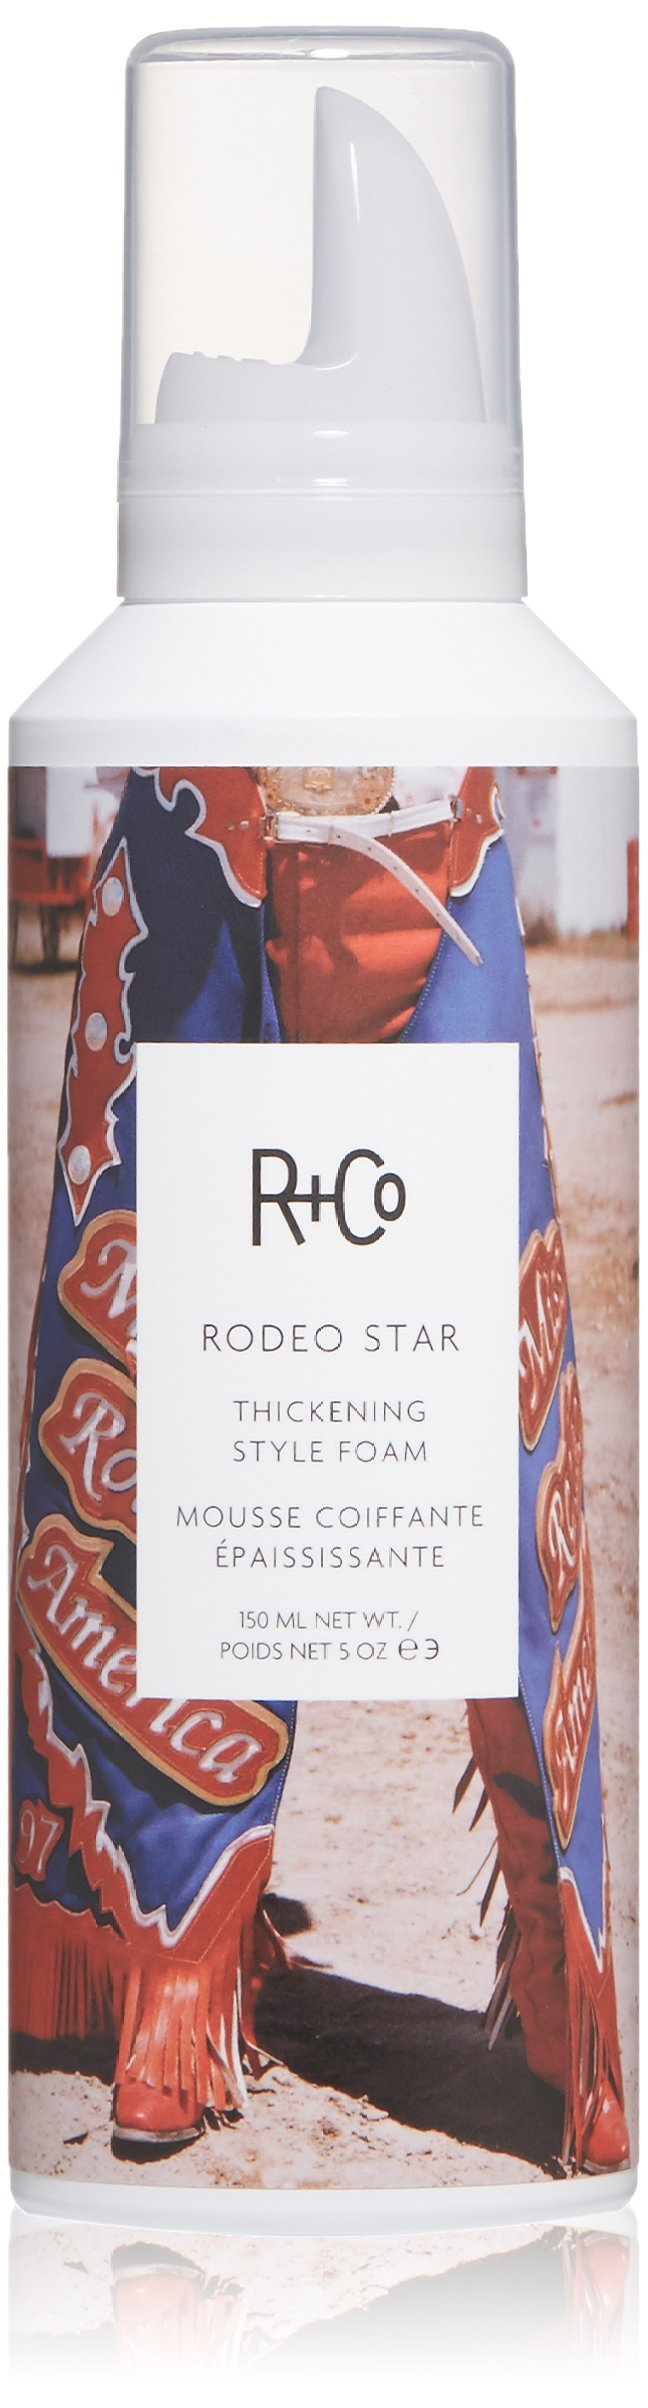 R+Co Rodeo Star Thickening Style Foam, 5 oz by R+Co